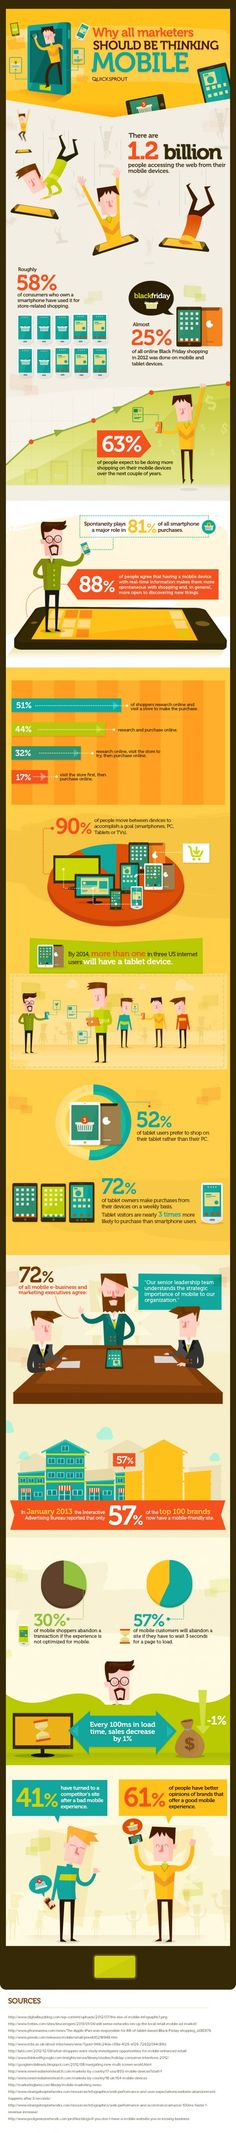 Why All Marketers Should Be Thinking #Mobile By www.riddsnetwork.in/about  (SEO Optimization Company)